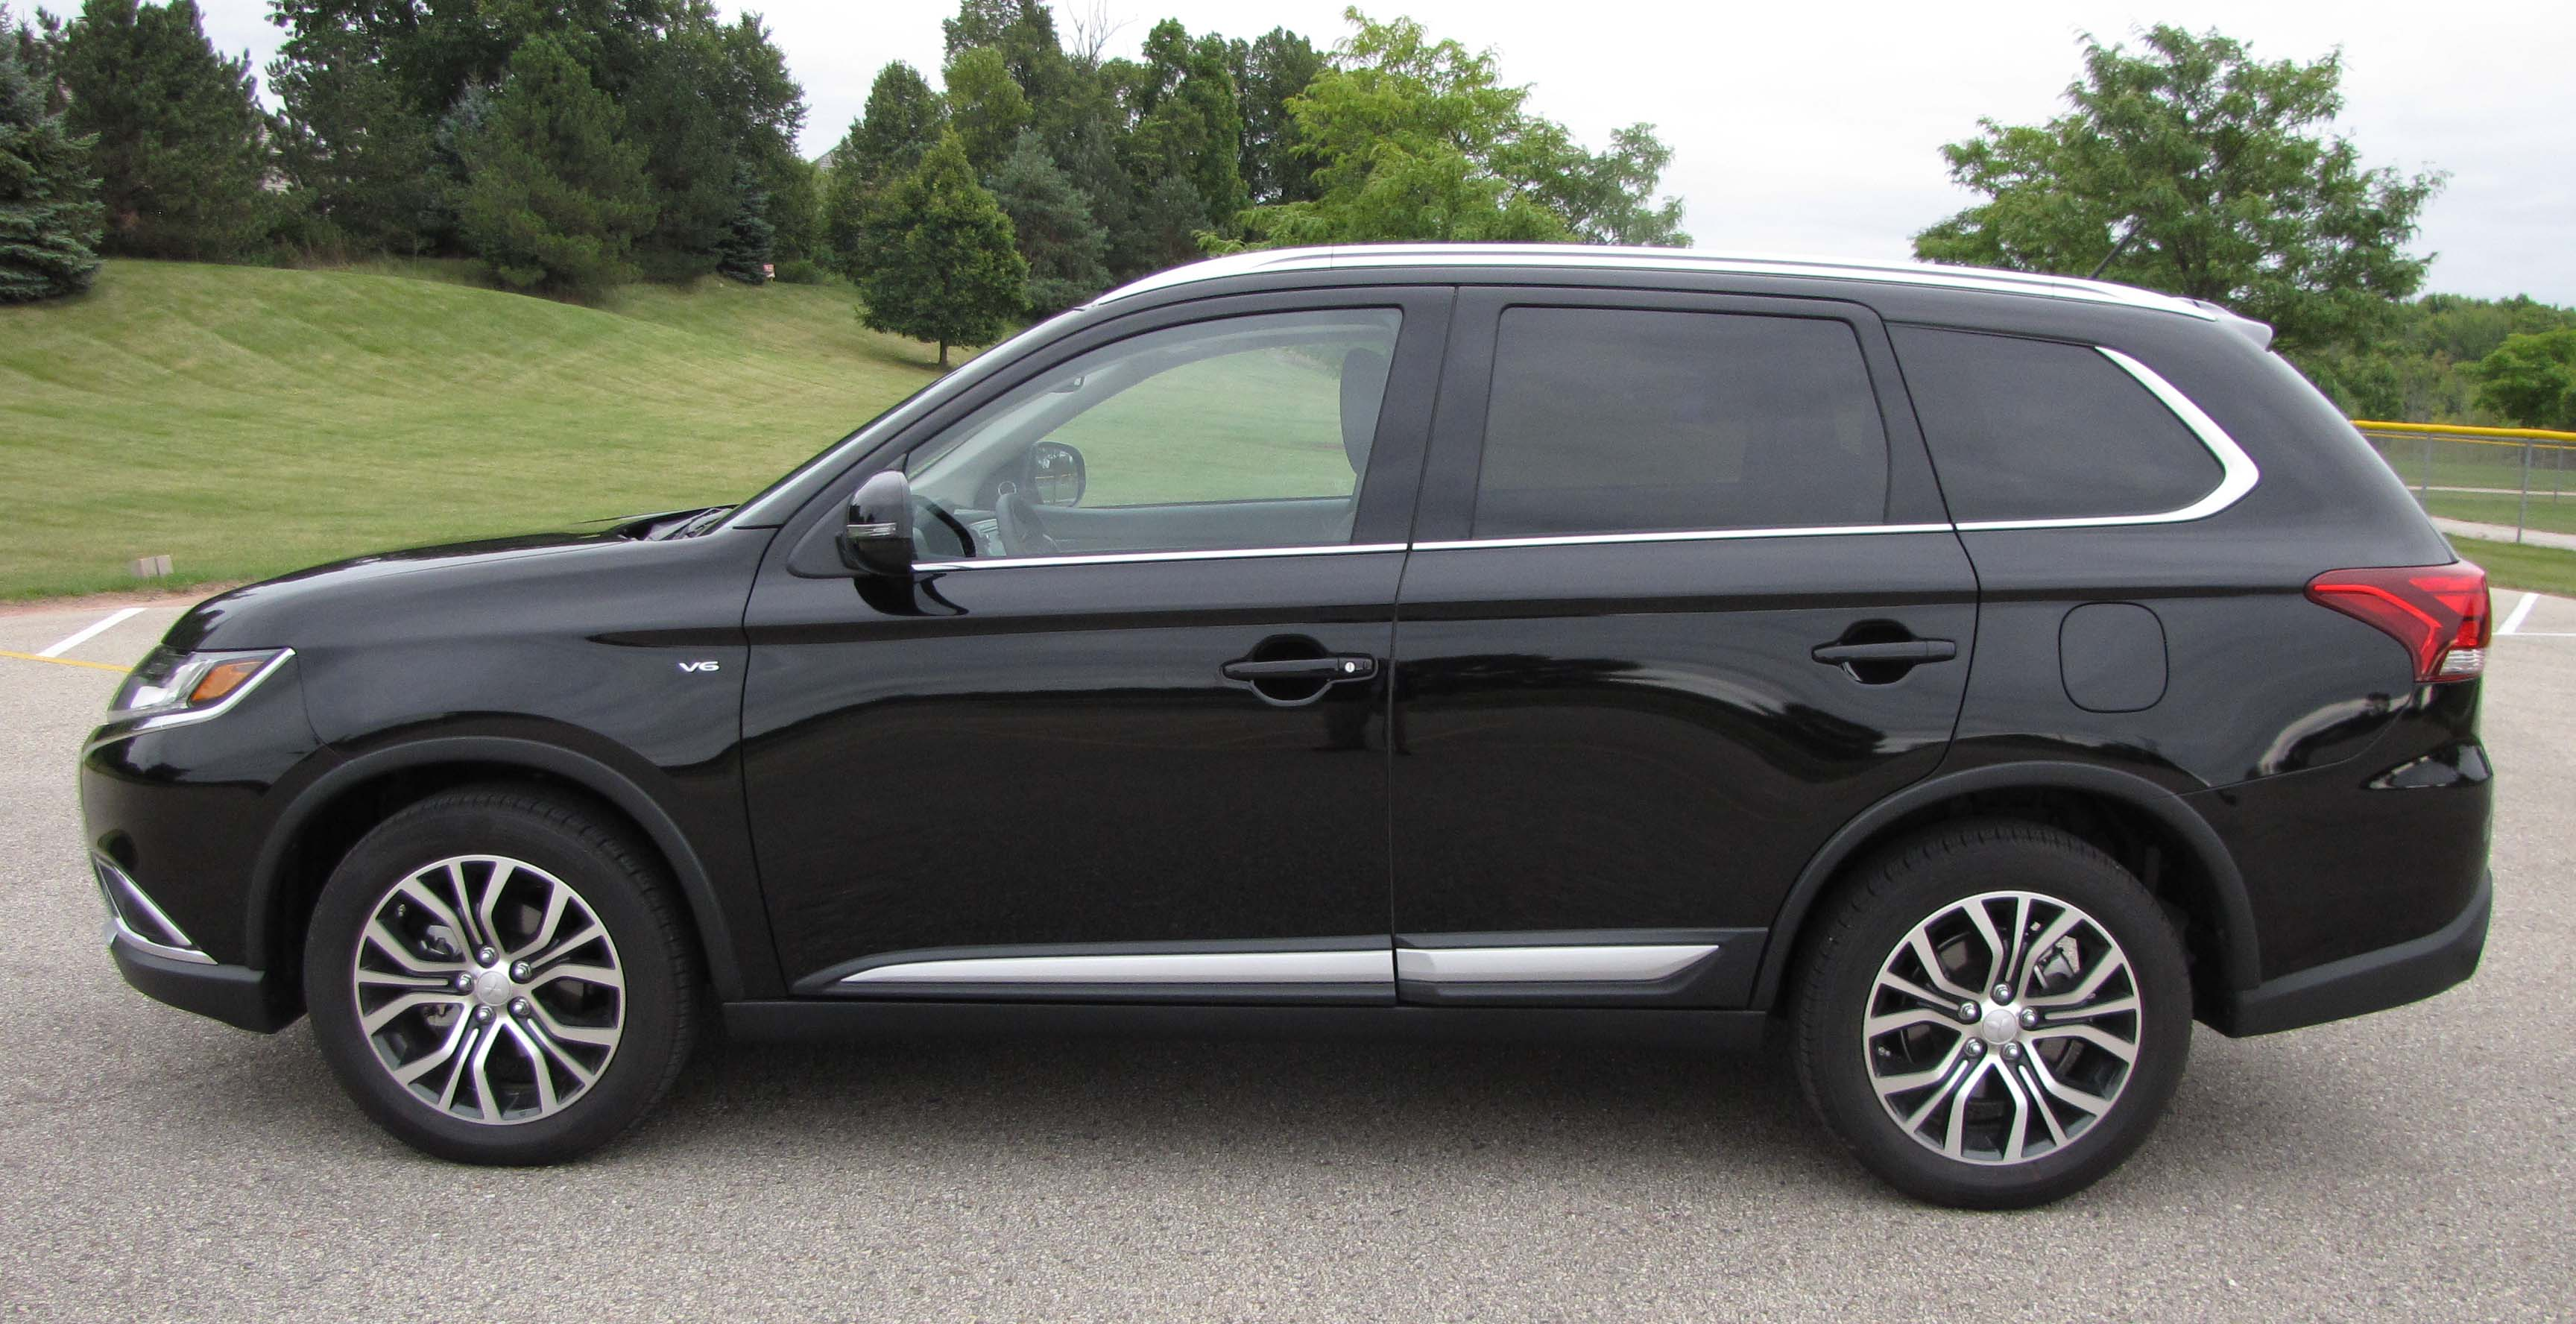 2016 Mitsubishi Outlander 3 0 Gt S Awc Savage On Wheels